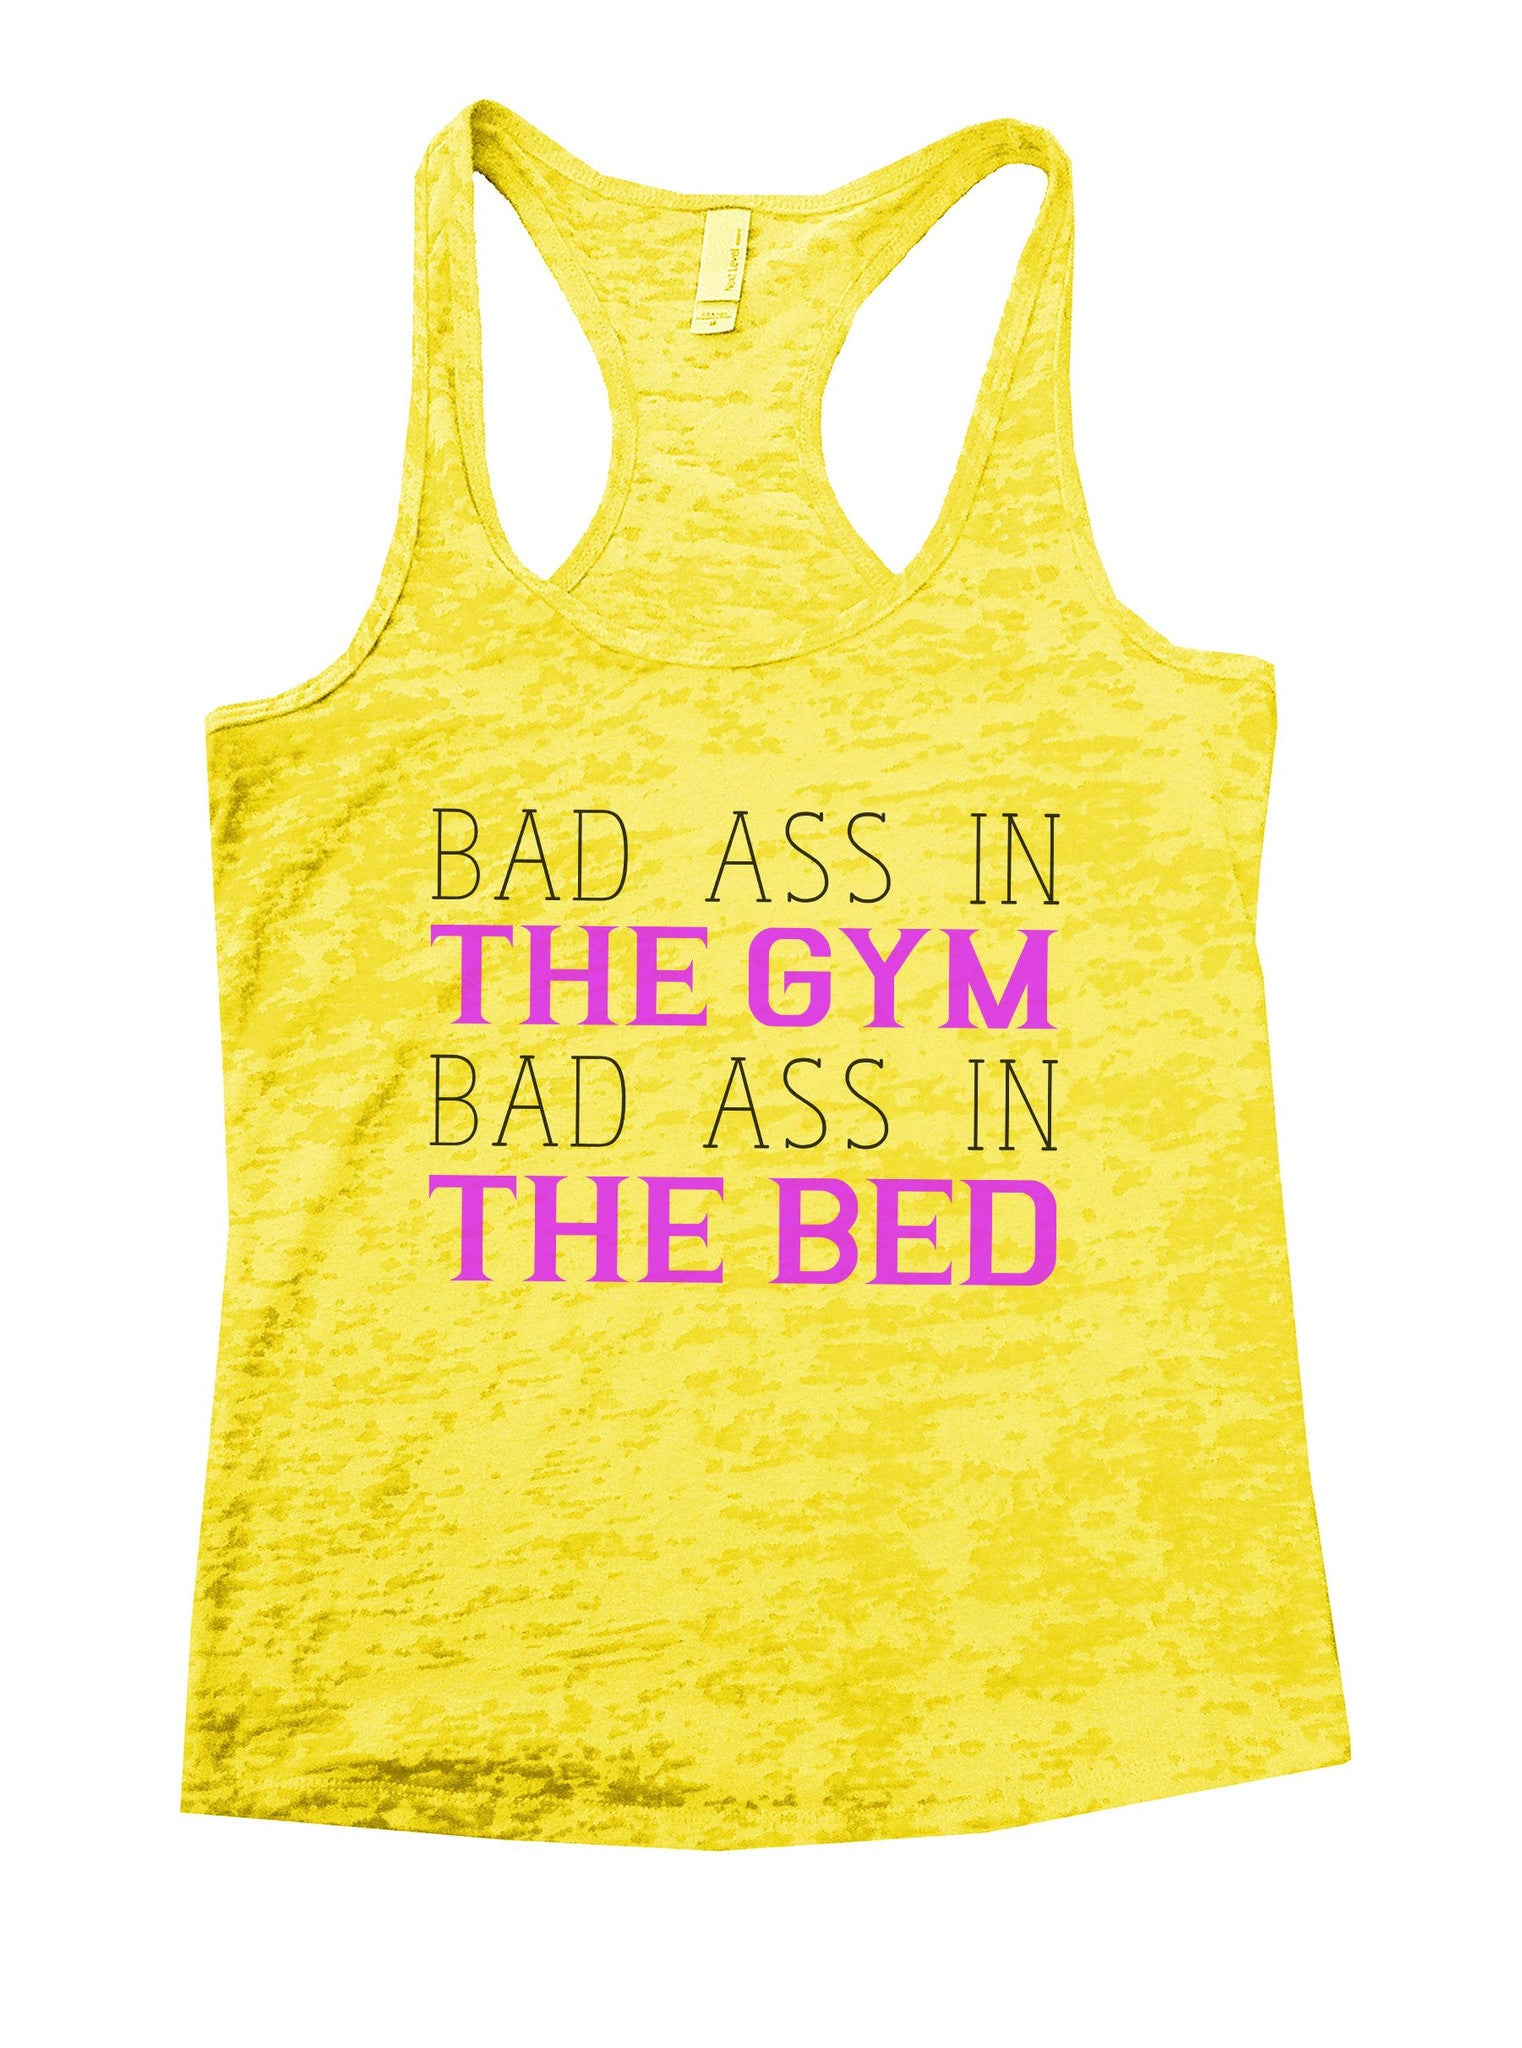 Bad Ass In The Gym Bad Ass In The Bed Burnout Tank Top By BurnoutTankTops.com - 864 - Funny Shirts Tank Tops Burnouts and Triblends  - 7